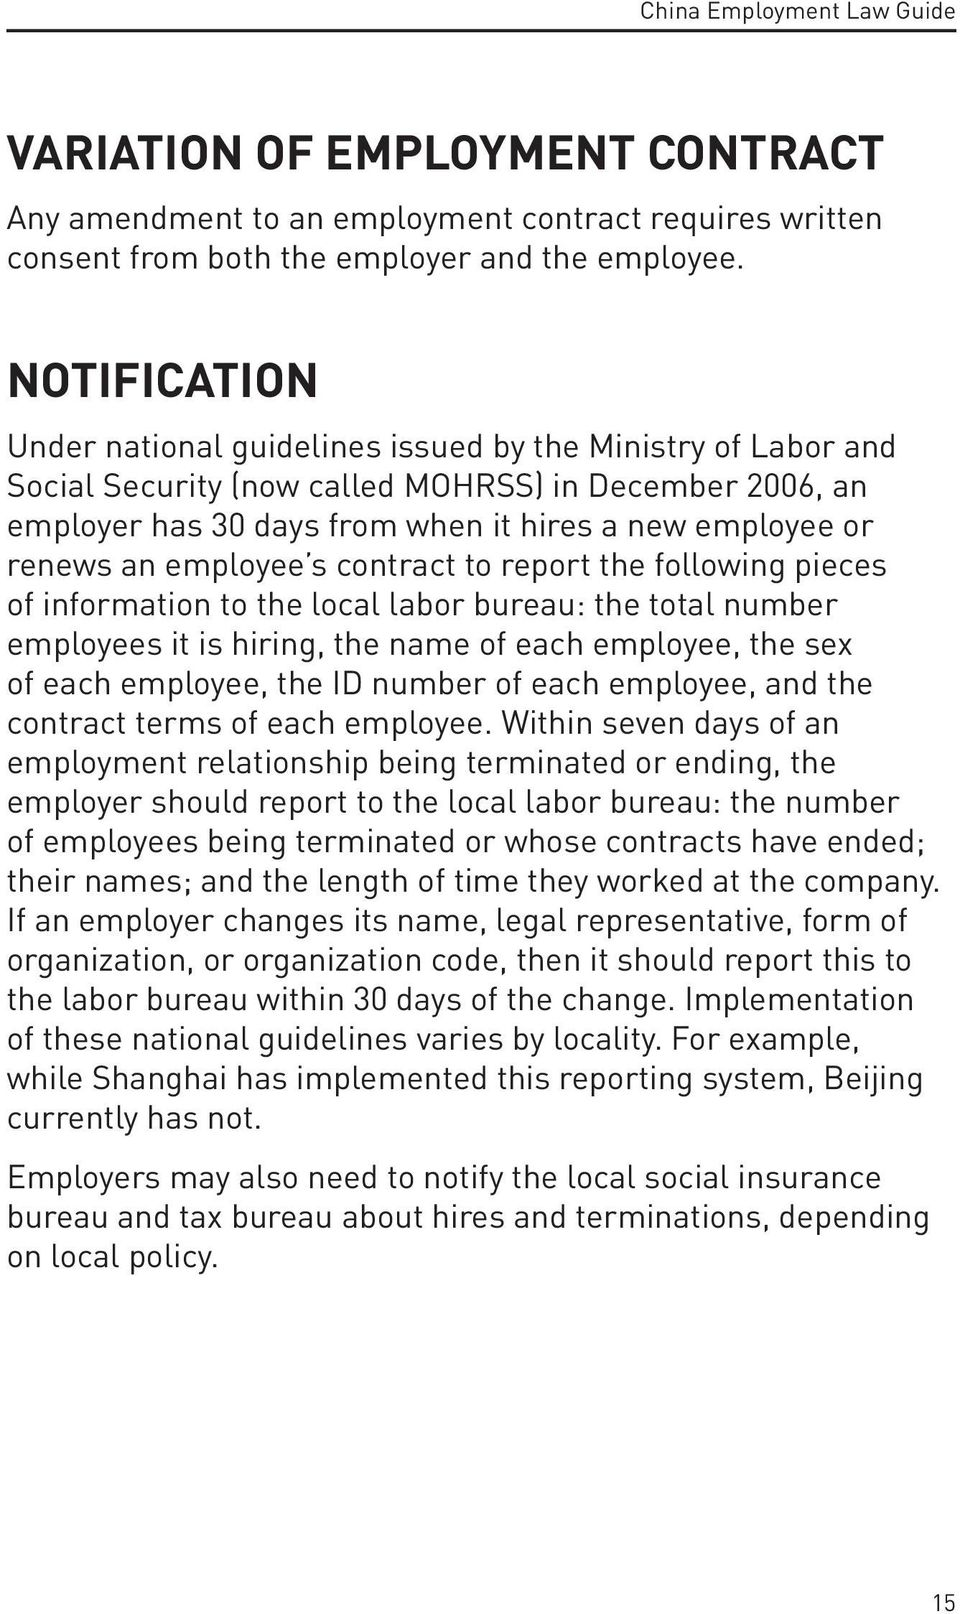 employee s contract to report the following pieces of information to the local labor bureau: the total number employees it is hiring, the name of each employee, the sex of each employee, the ID